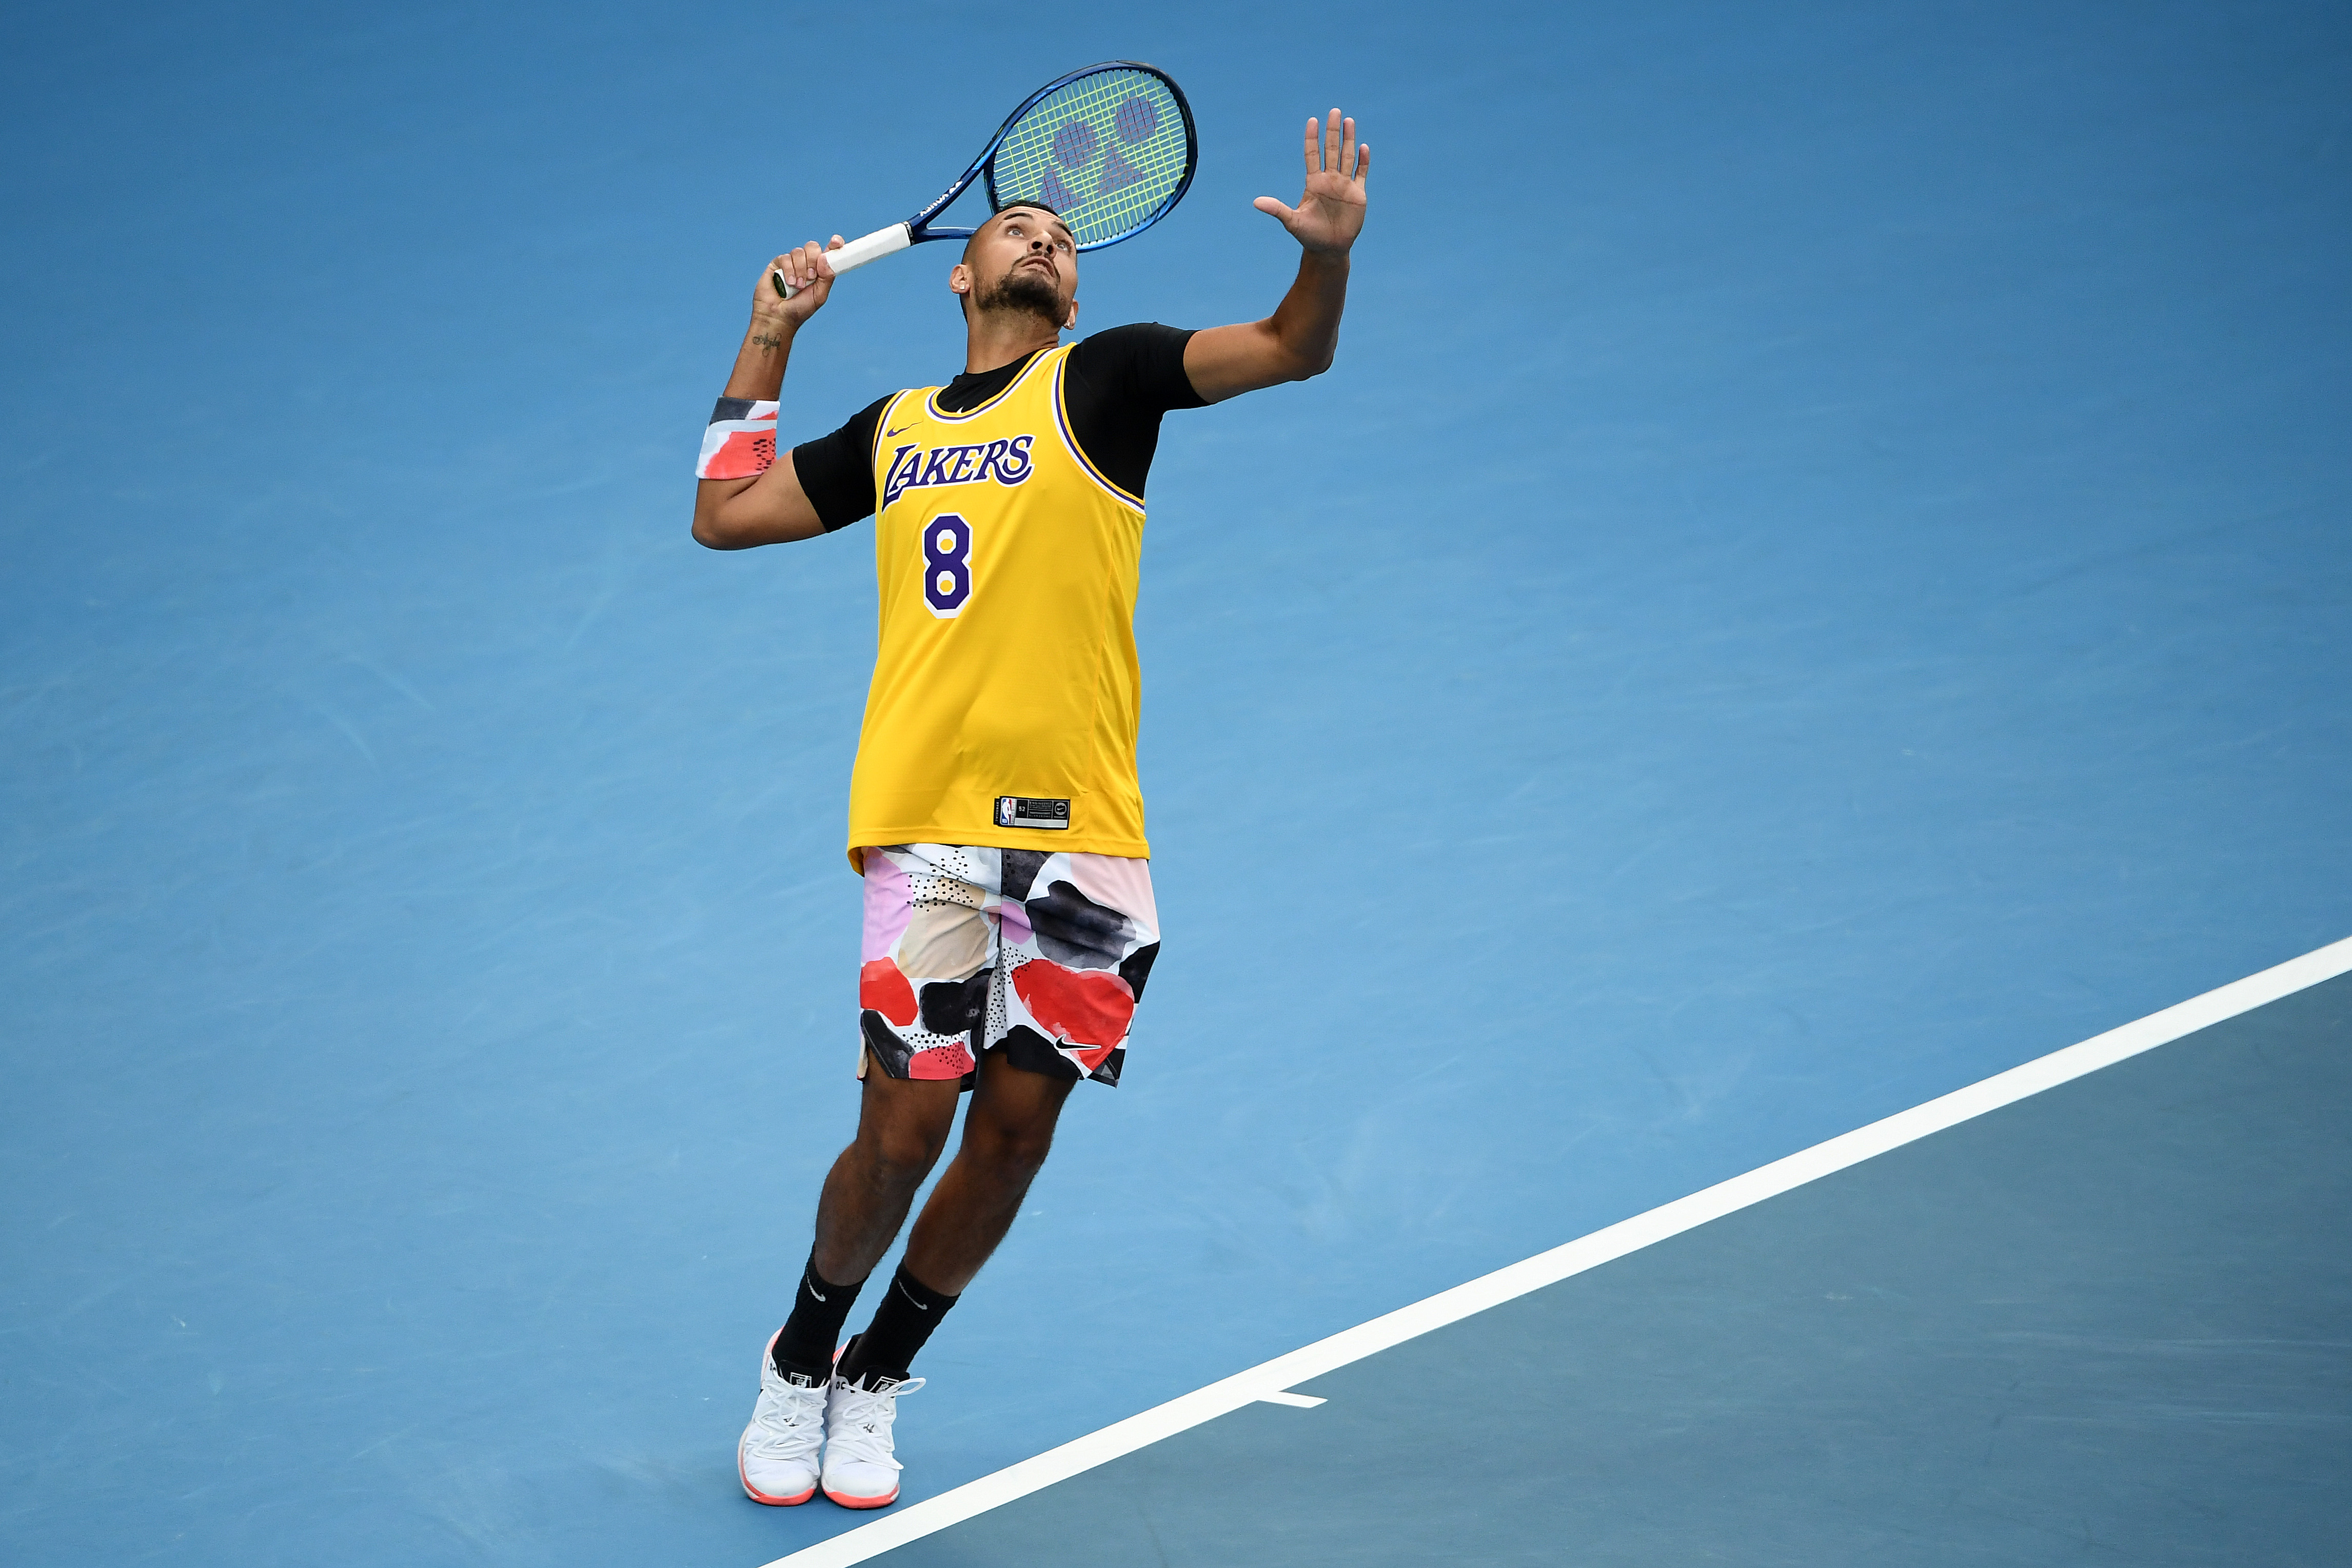 Nick Kyrgios of Australia at the 2020 Australian Open at Melbourne Park on January 27, 2020.